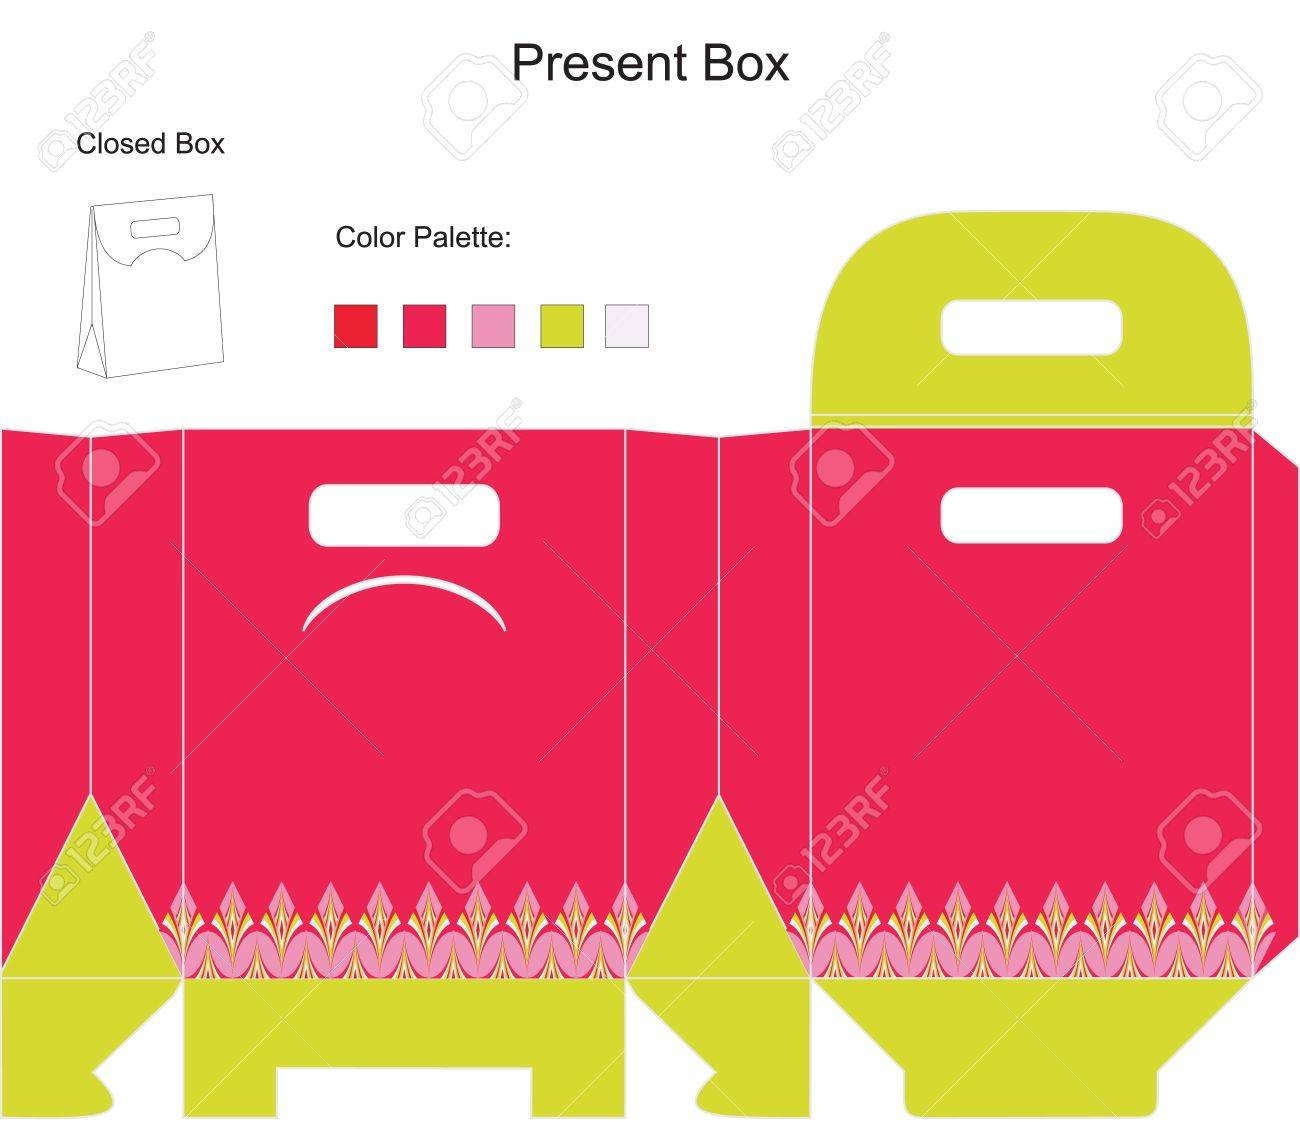 template present box for baby girl shower royalty cliparts template present box for baby girl shower stock vector 14151264